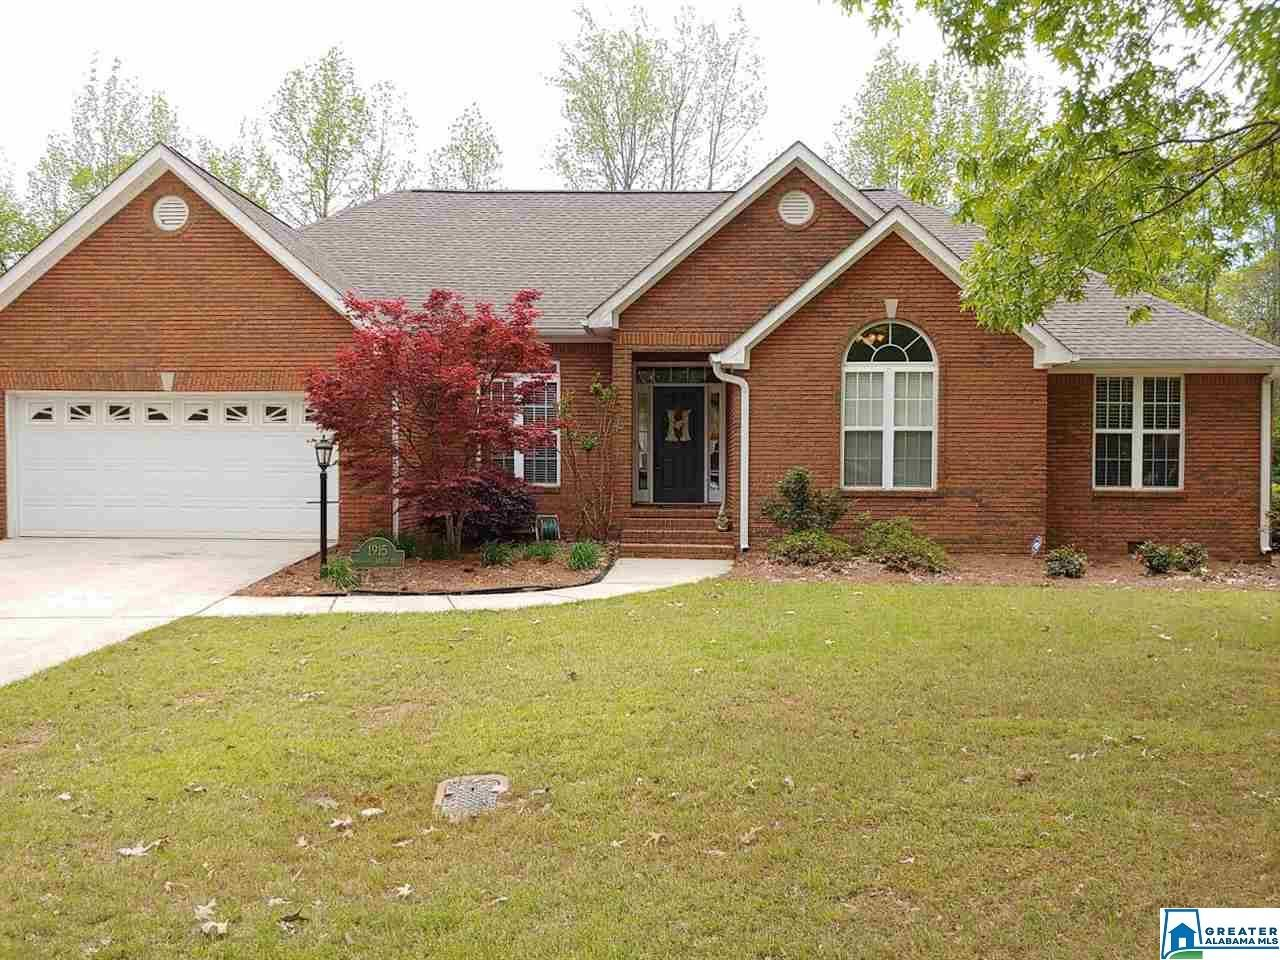 1915 PLEASANT RIDGE DR, Sylacauga, AL 35150 - MLS#: 879574